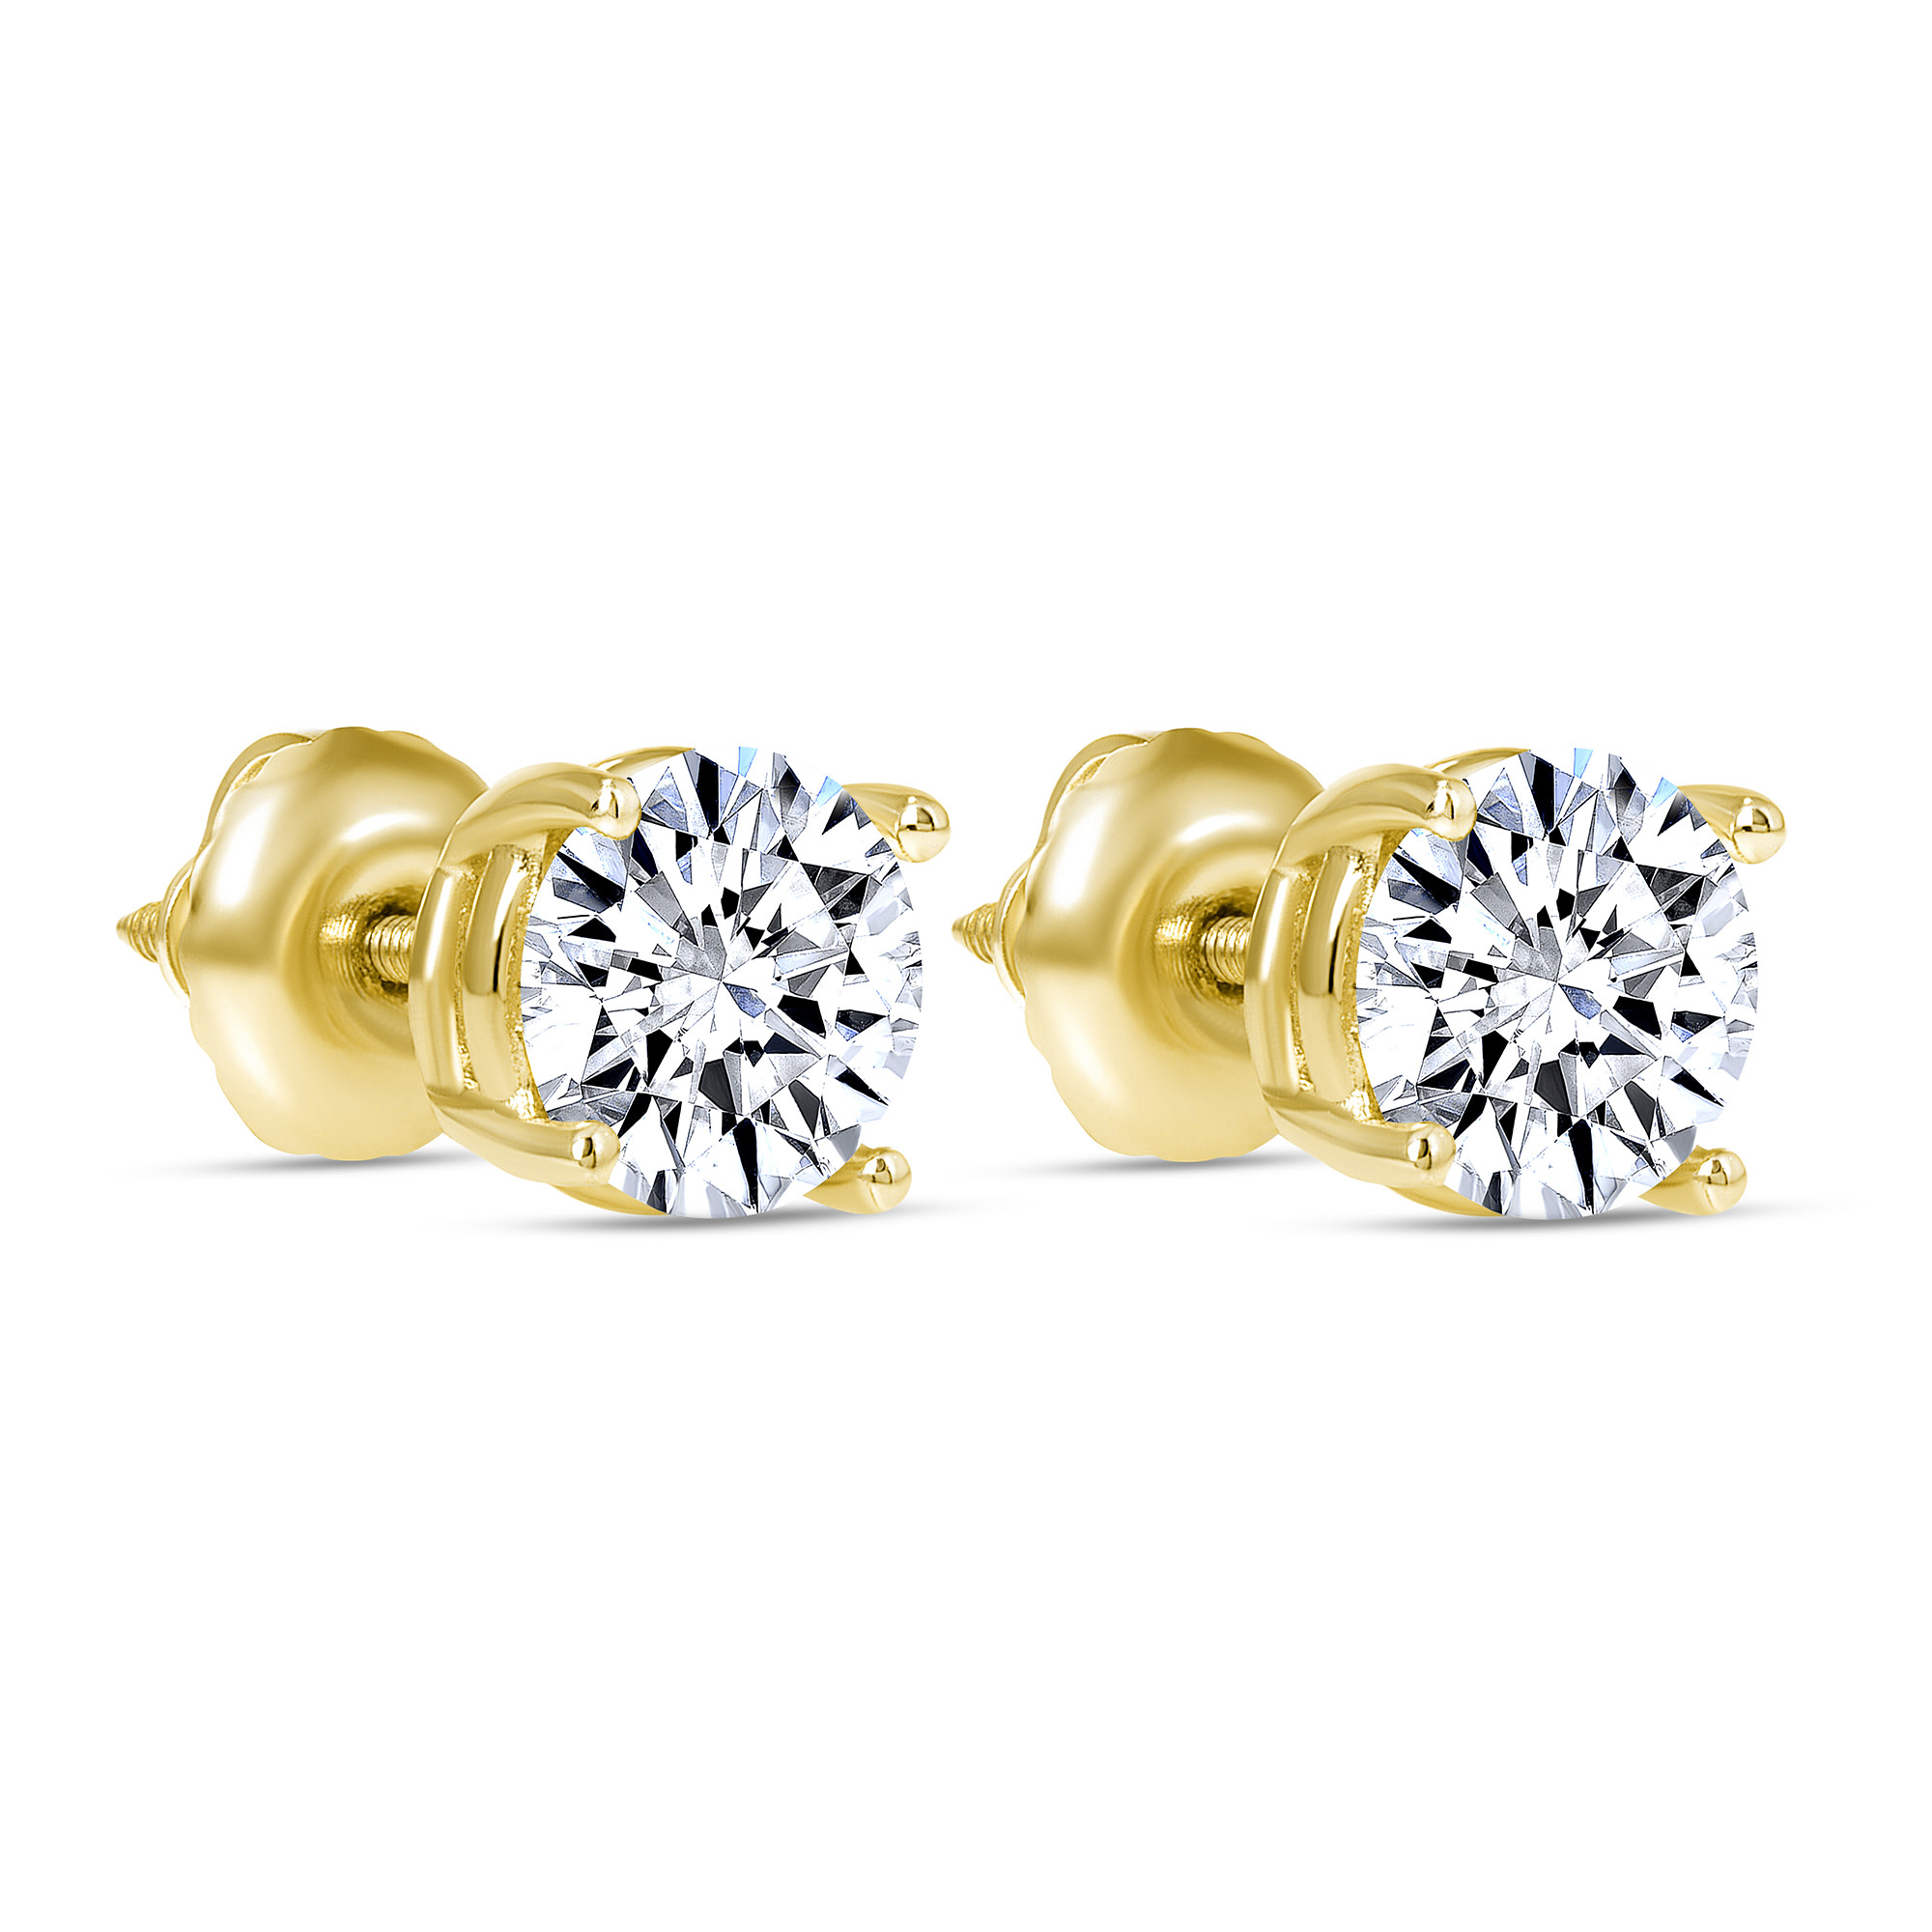 2 carat diamond stud earrings price | 2 carat diamond stud earring